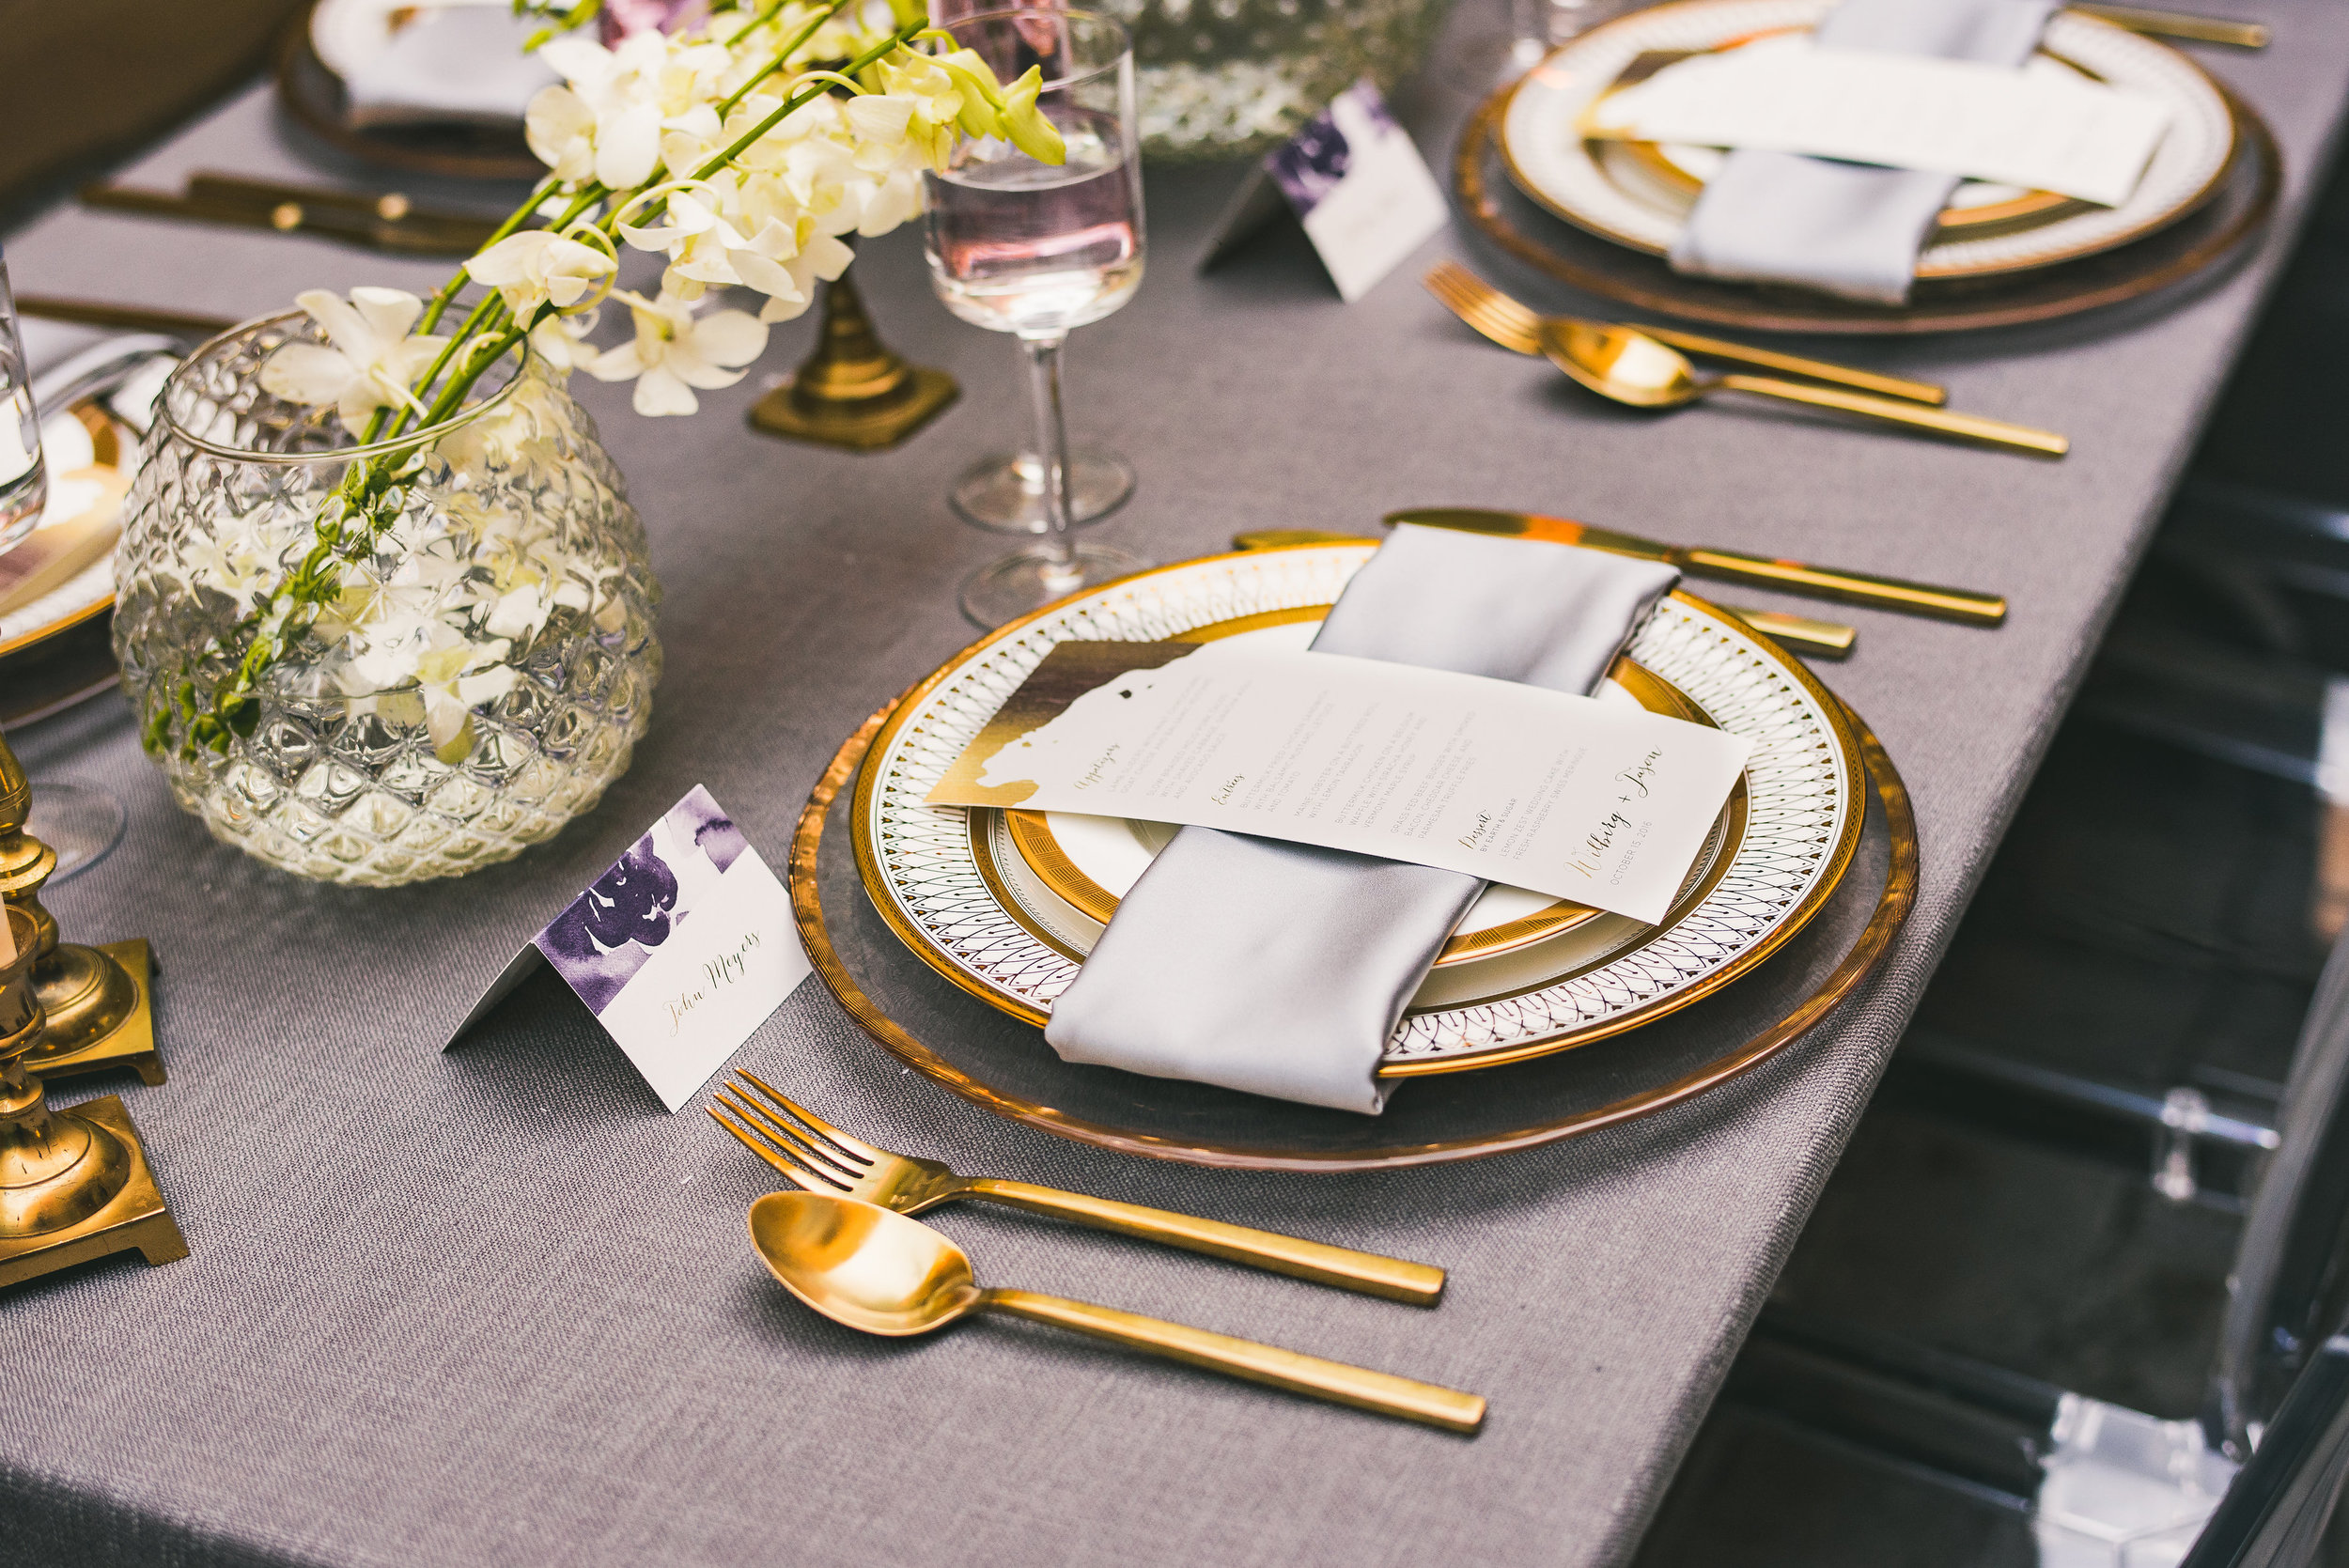 Michelle-Perez-Events-Styled-Shoot-45.jpg